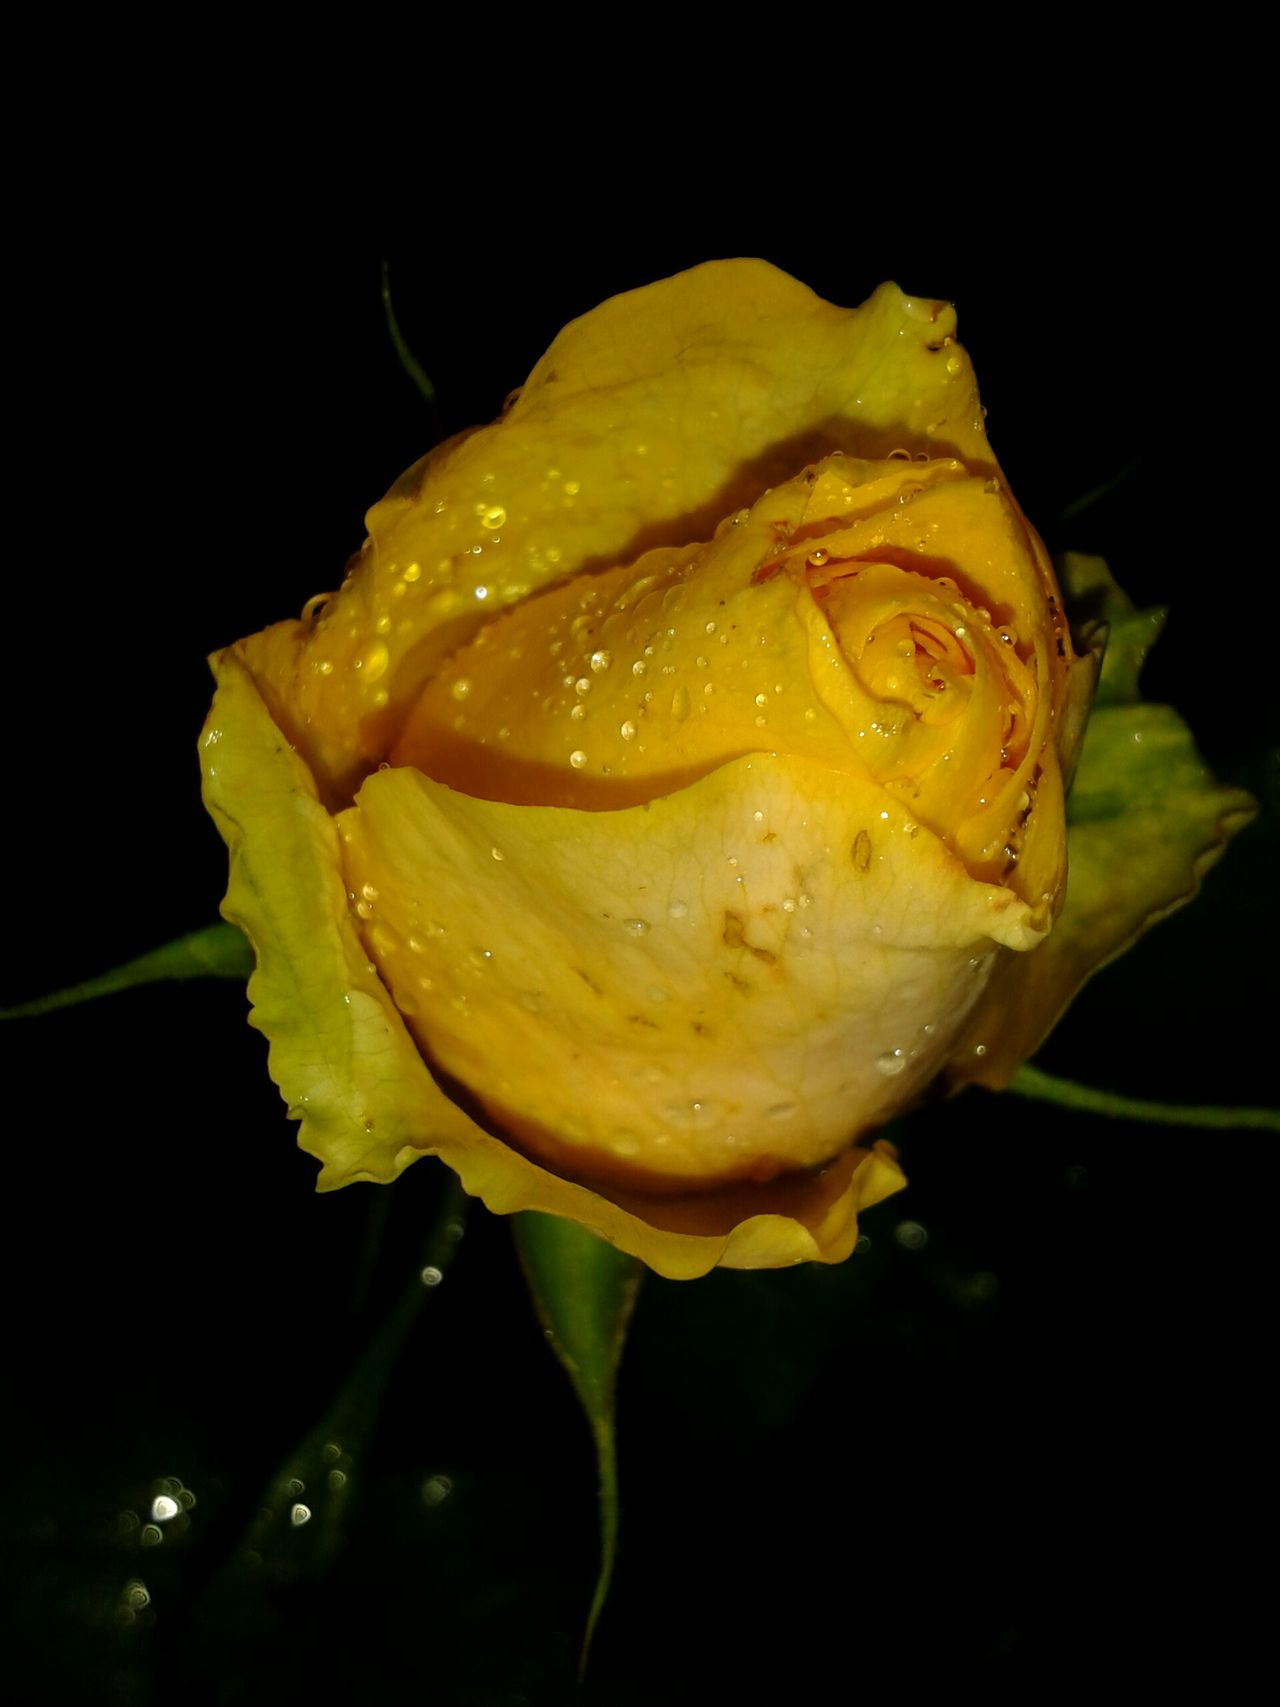 This photo is a personal favourite of mine 😊 the yellow rose always looks great at night 😎 Hope you like it too ☺ Rose - Flower Droplets, Water Droplets, Flowers  Beautiful Nature Nature Beauty In Nature Amazing Nature Flowers In My Garden Awesome_nature_shots Macro_flower Capture The Moment Macro Botany Macro_captures Smartphone Photography Things I Like Focus On Macro Beauty Flowers, Nature And Beauty Nature On Your Doorstep Purist Droplet Night EyeEm Nature Lover Black Background Flower Photography Yellow Rose